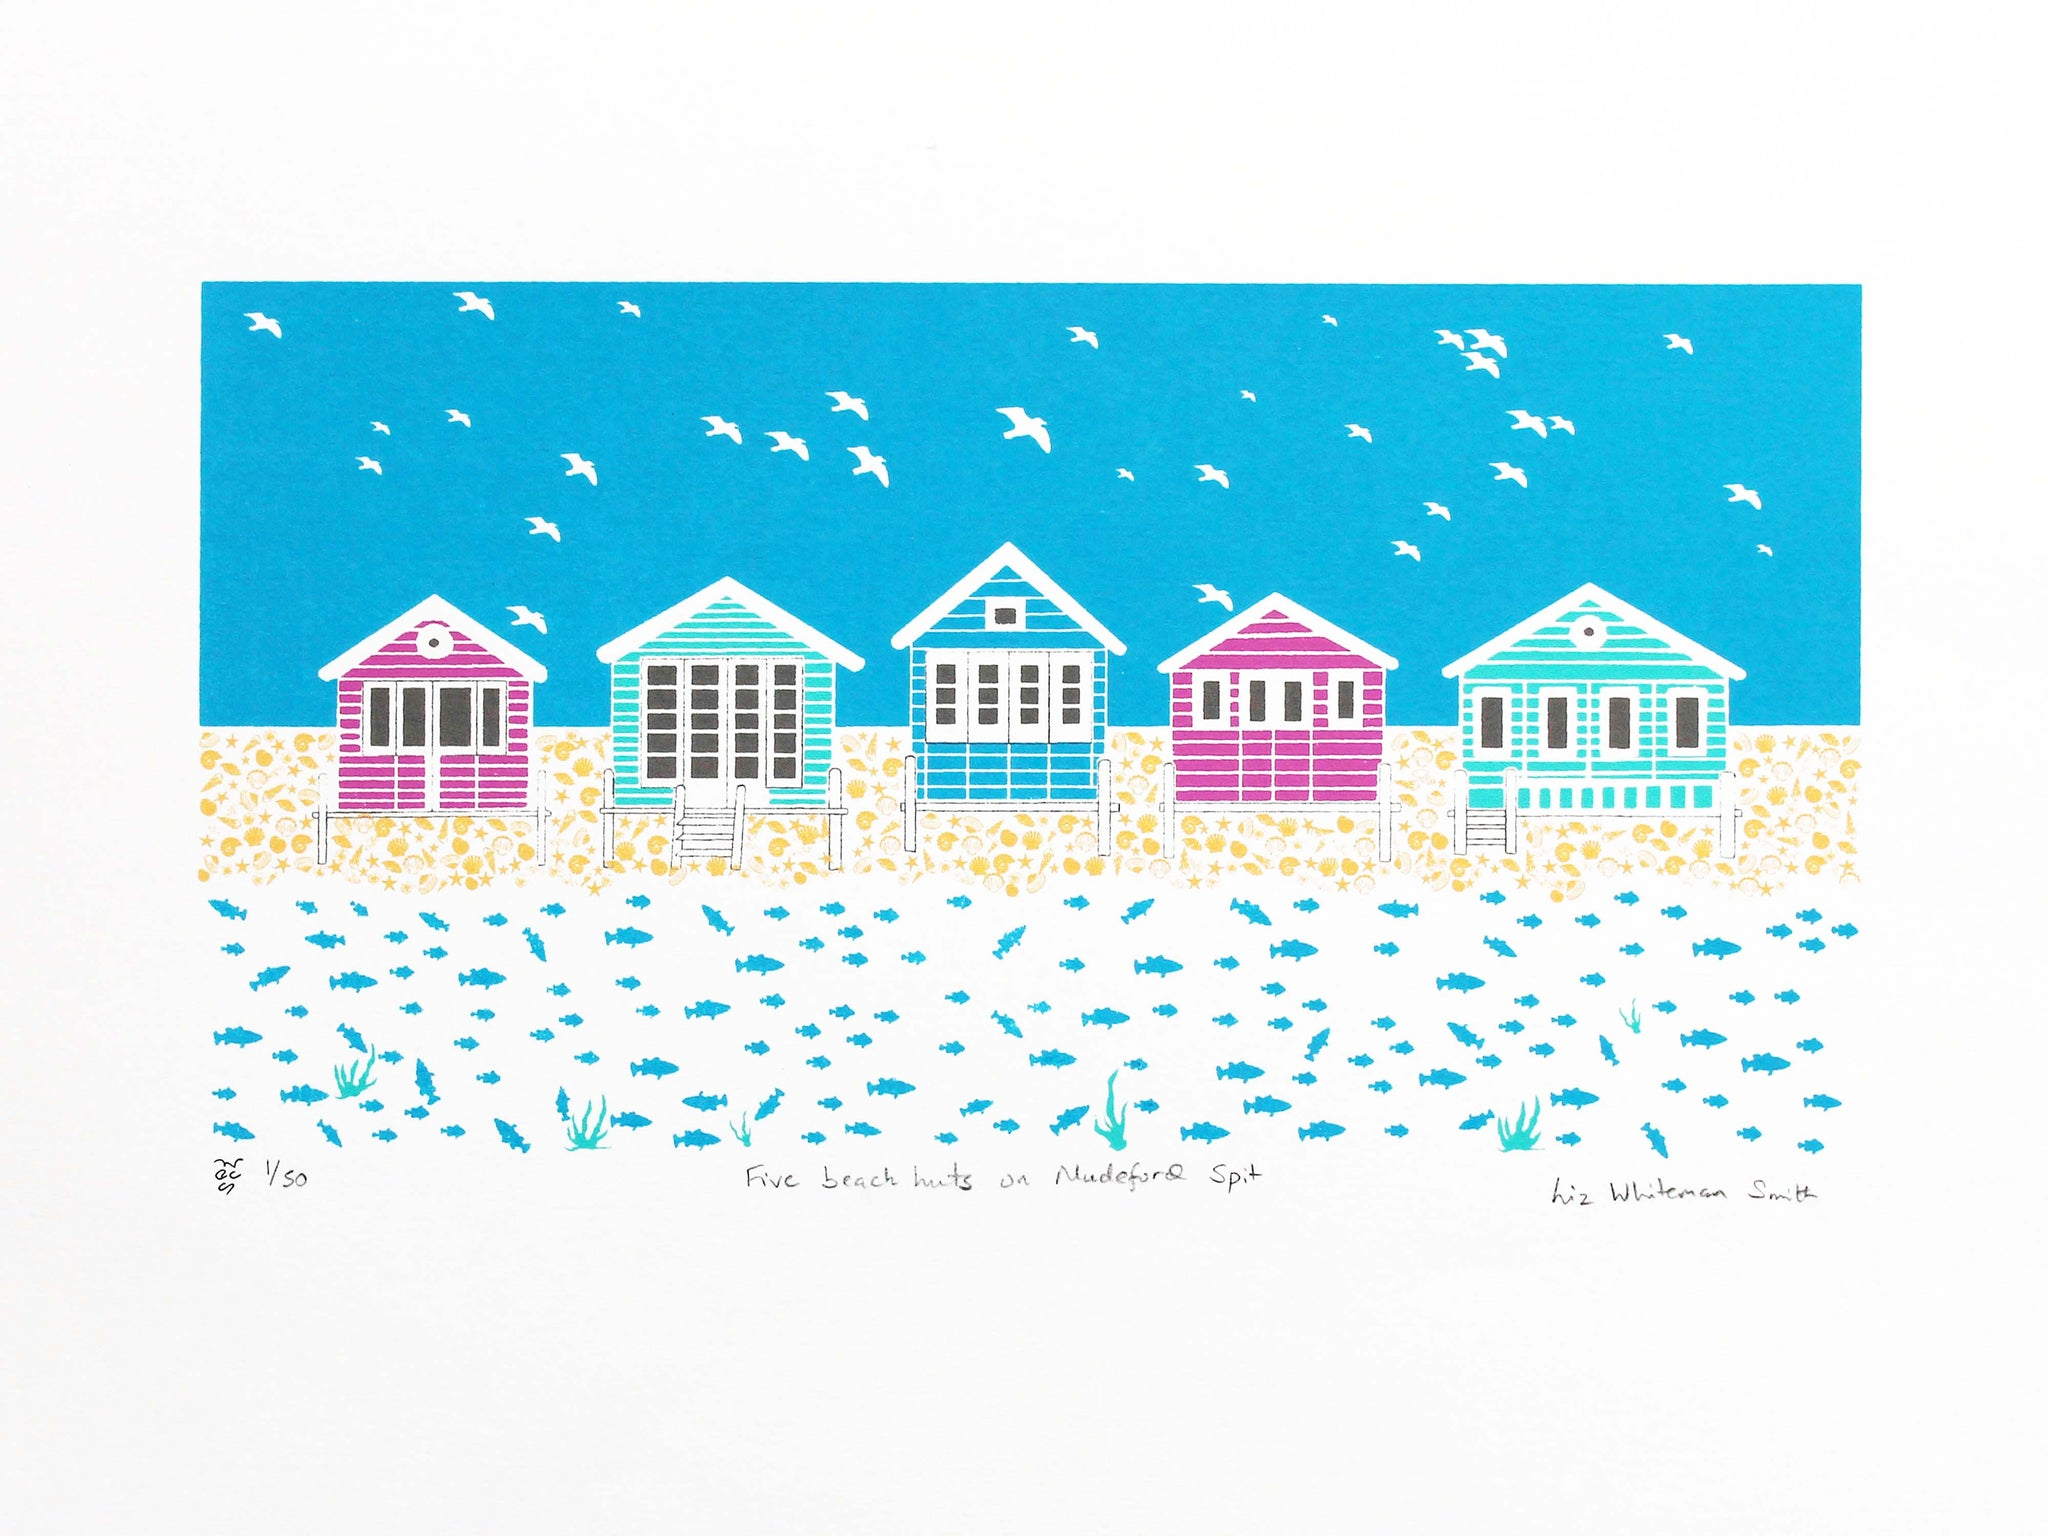 Five beach huts on Mudeford Spit